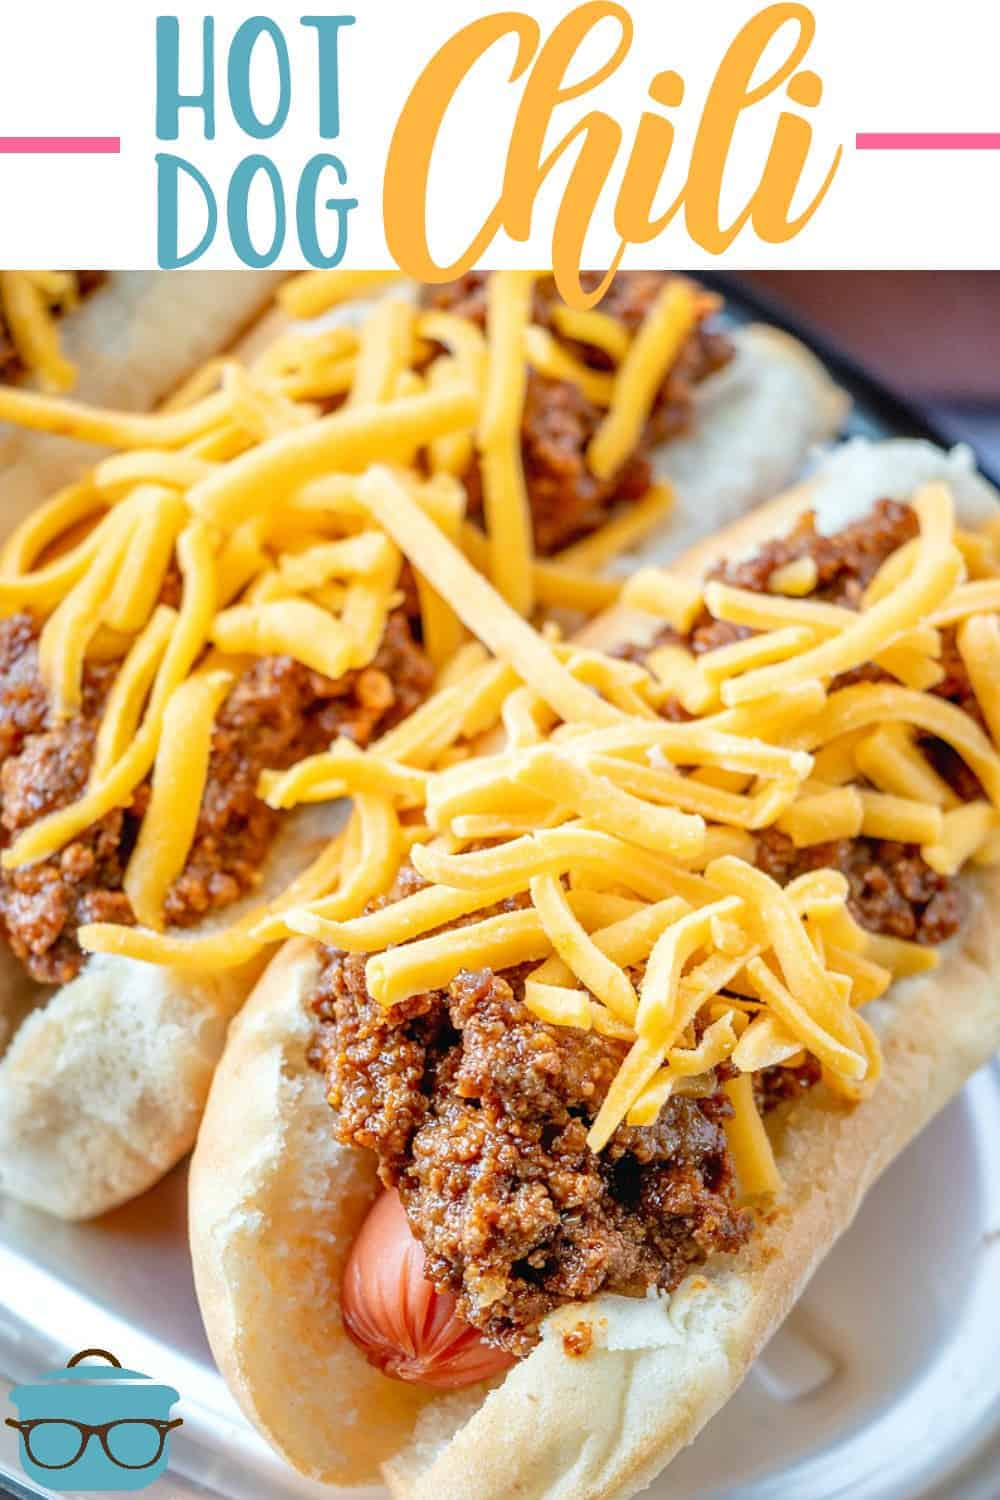 Southern Style Homemade Hot Dog Chili is made with ground beef, garlic, beef broth, tomato sauce and seasonings (no beans!) So much flavor! #hotdogchili #slowcooker